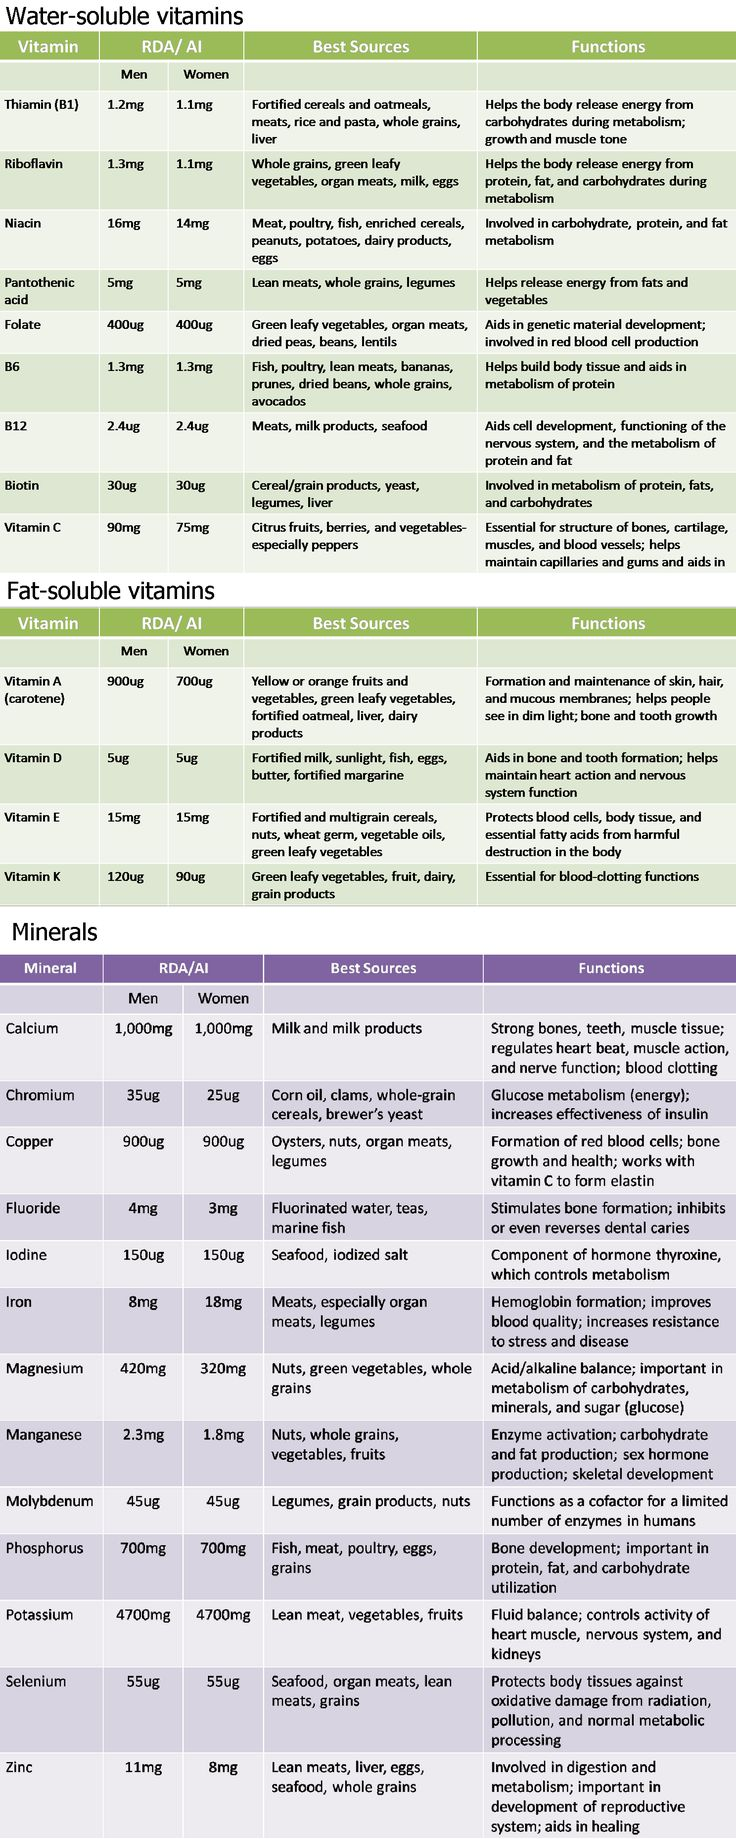 121 best images about Vitamins, Minerals and Supplements ...